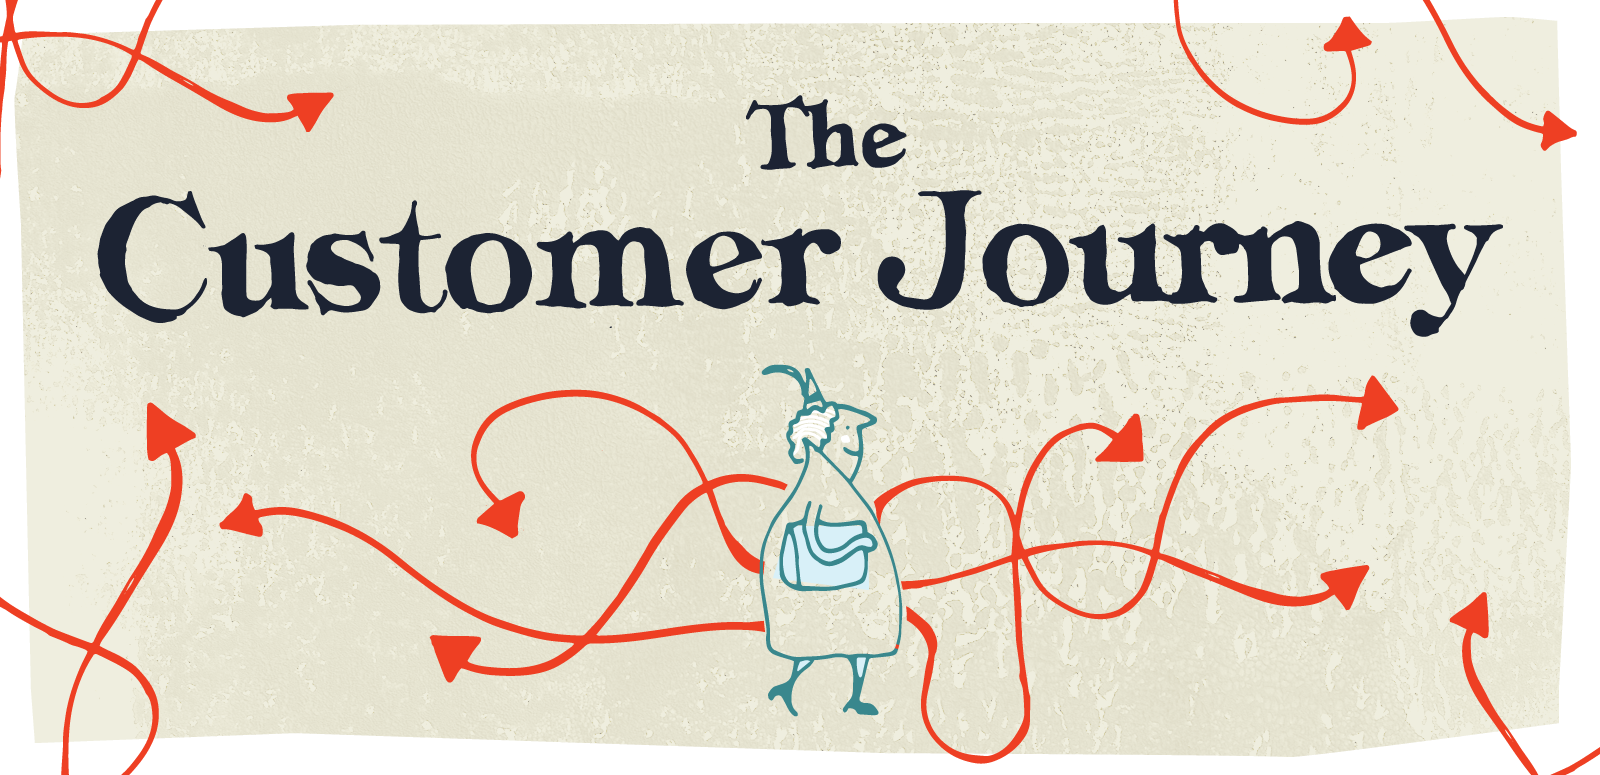 defining your customer journey in 5 steps